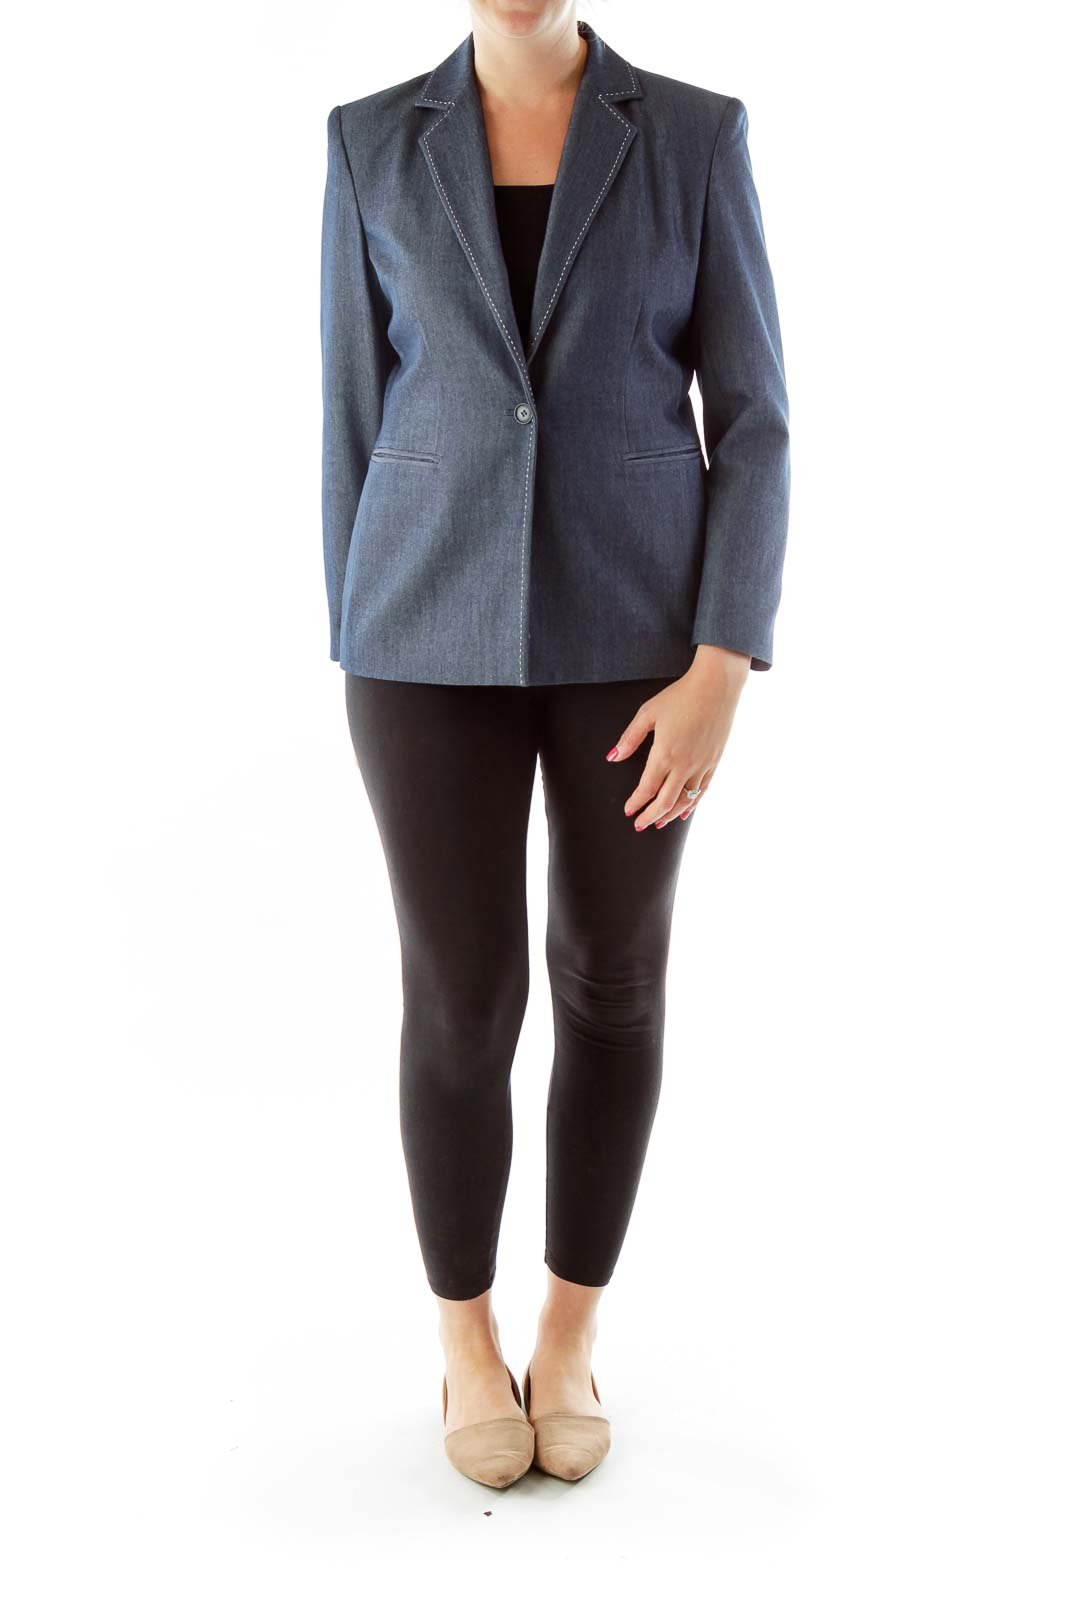 Gray Fitted Stitched Suit Jacket